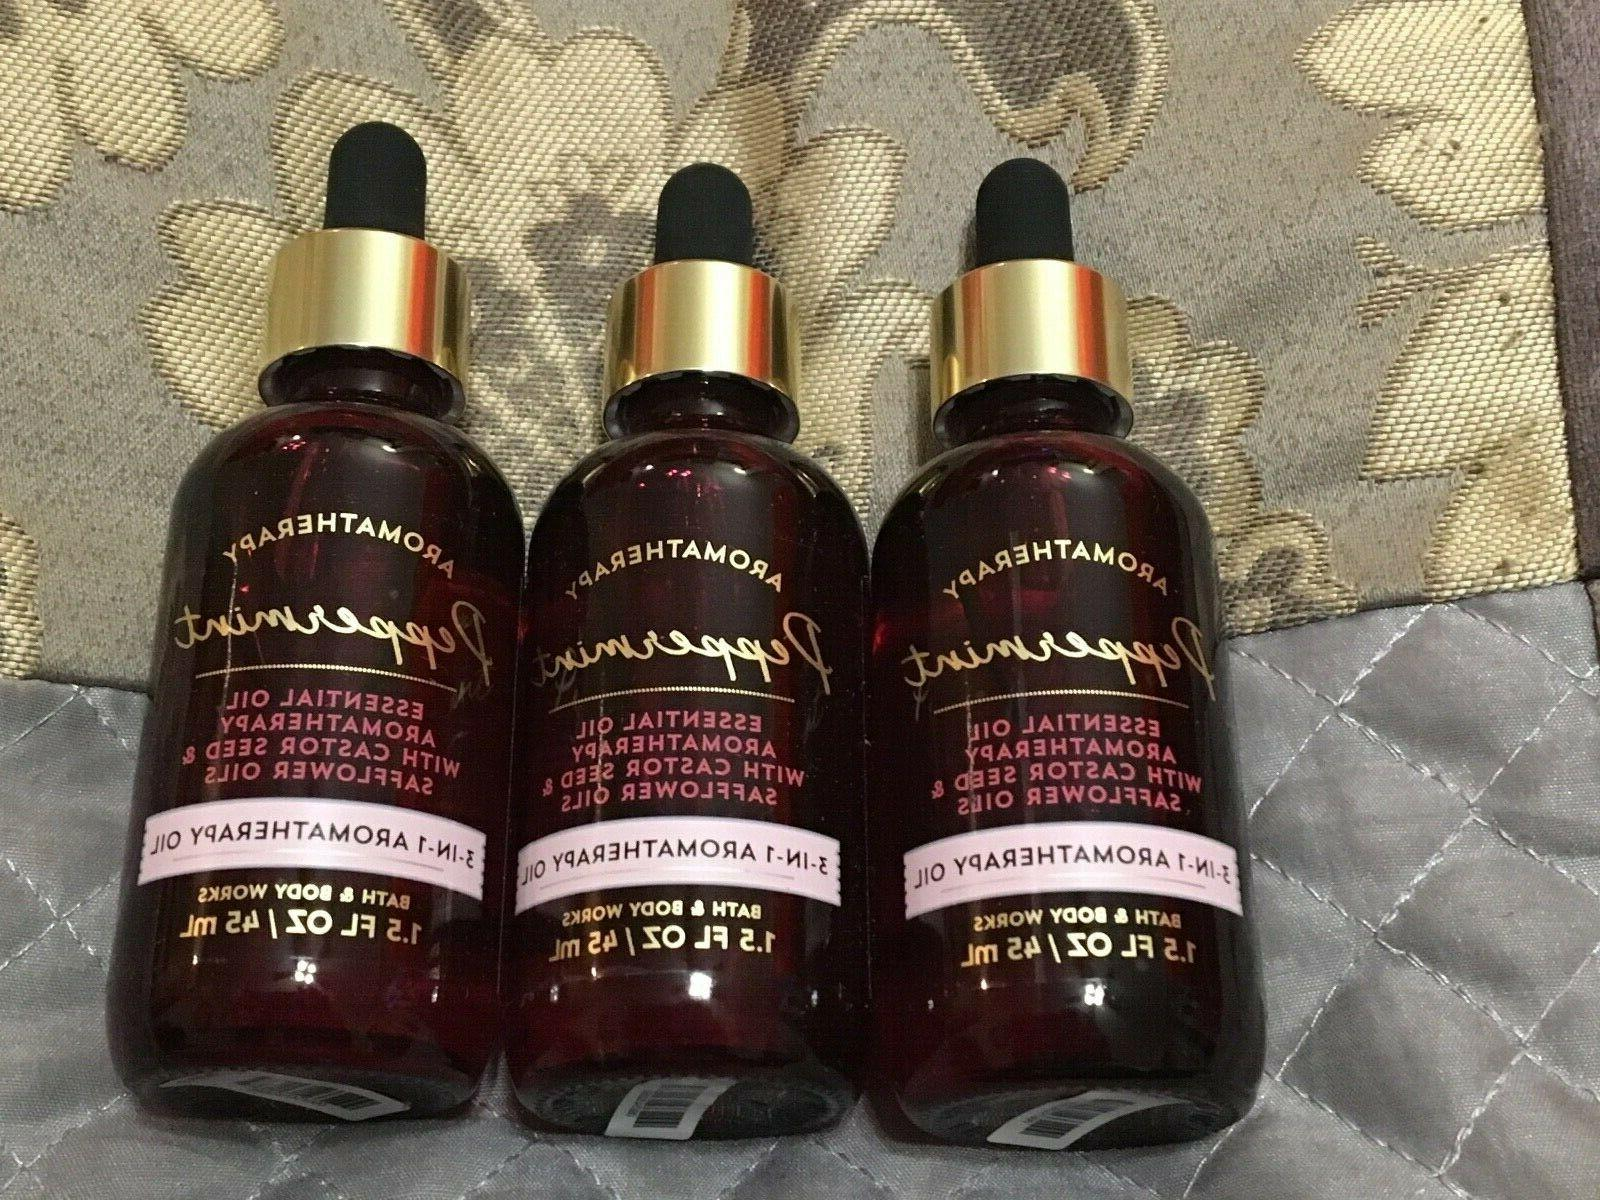 3 x bath and and body works